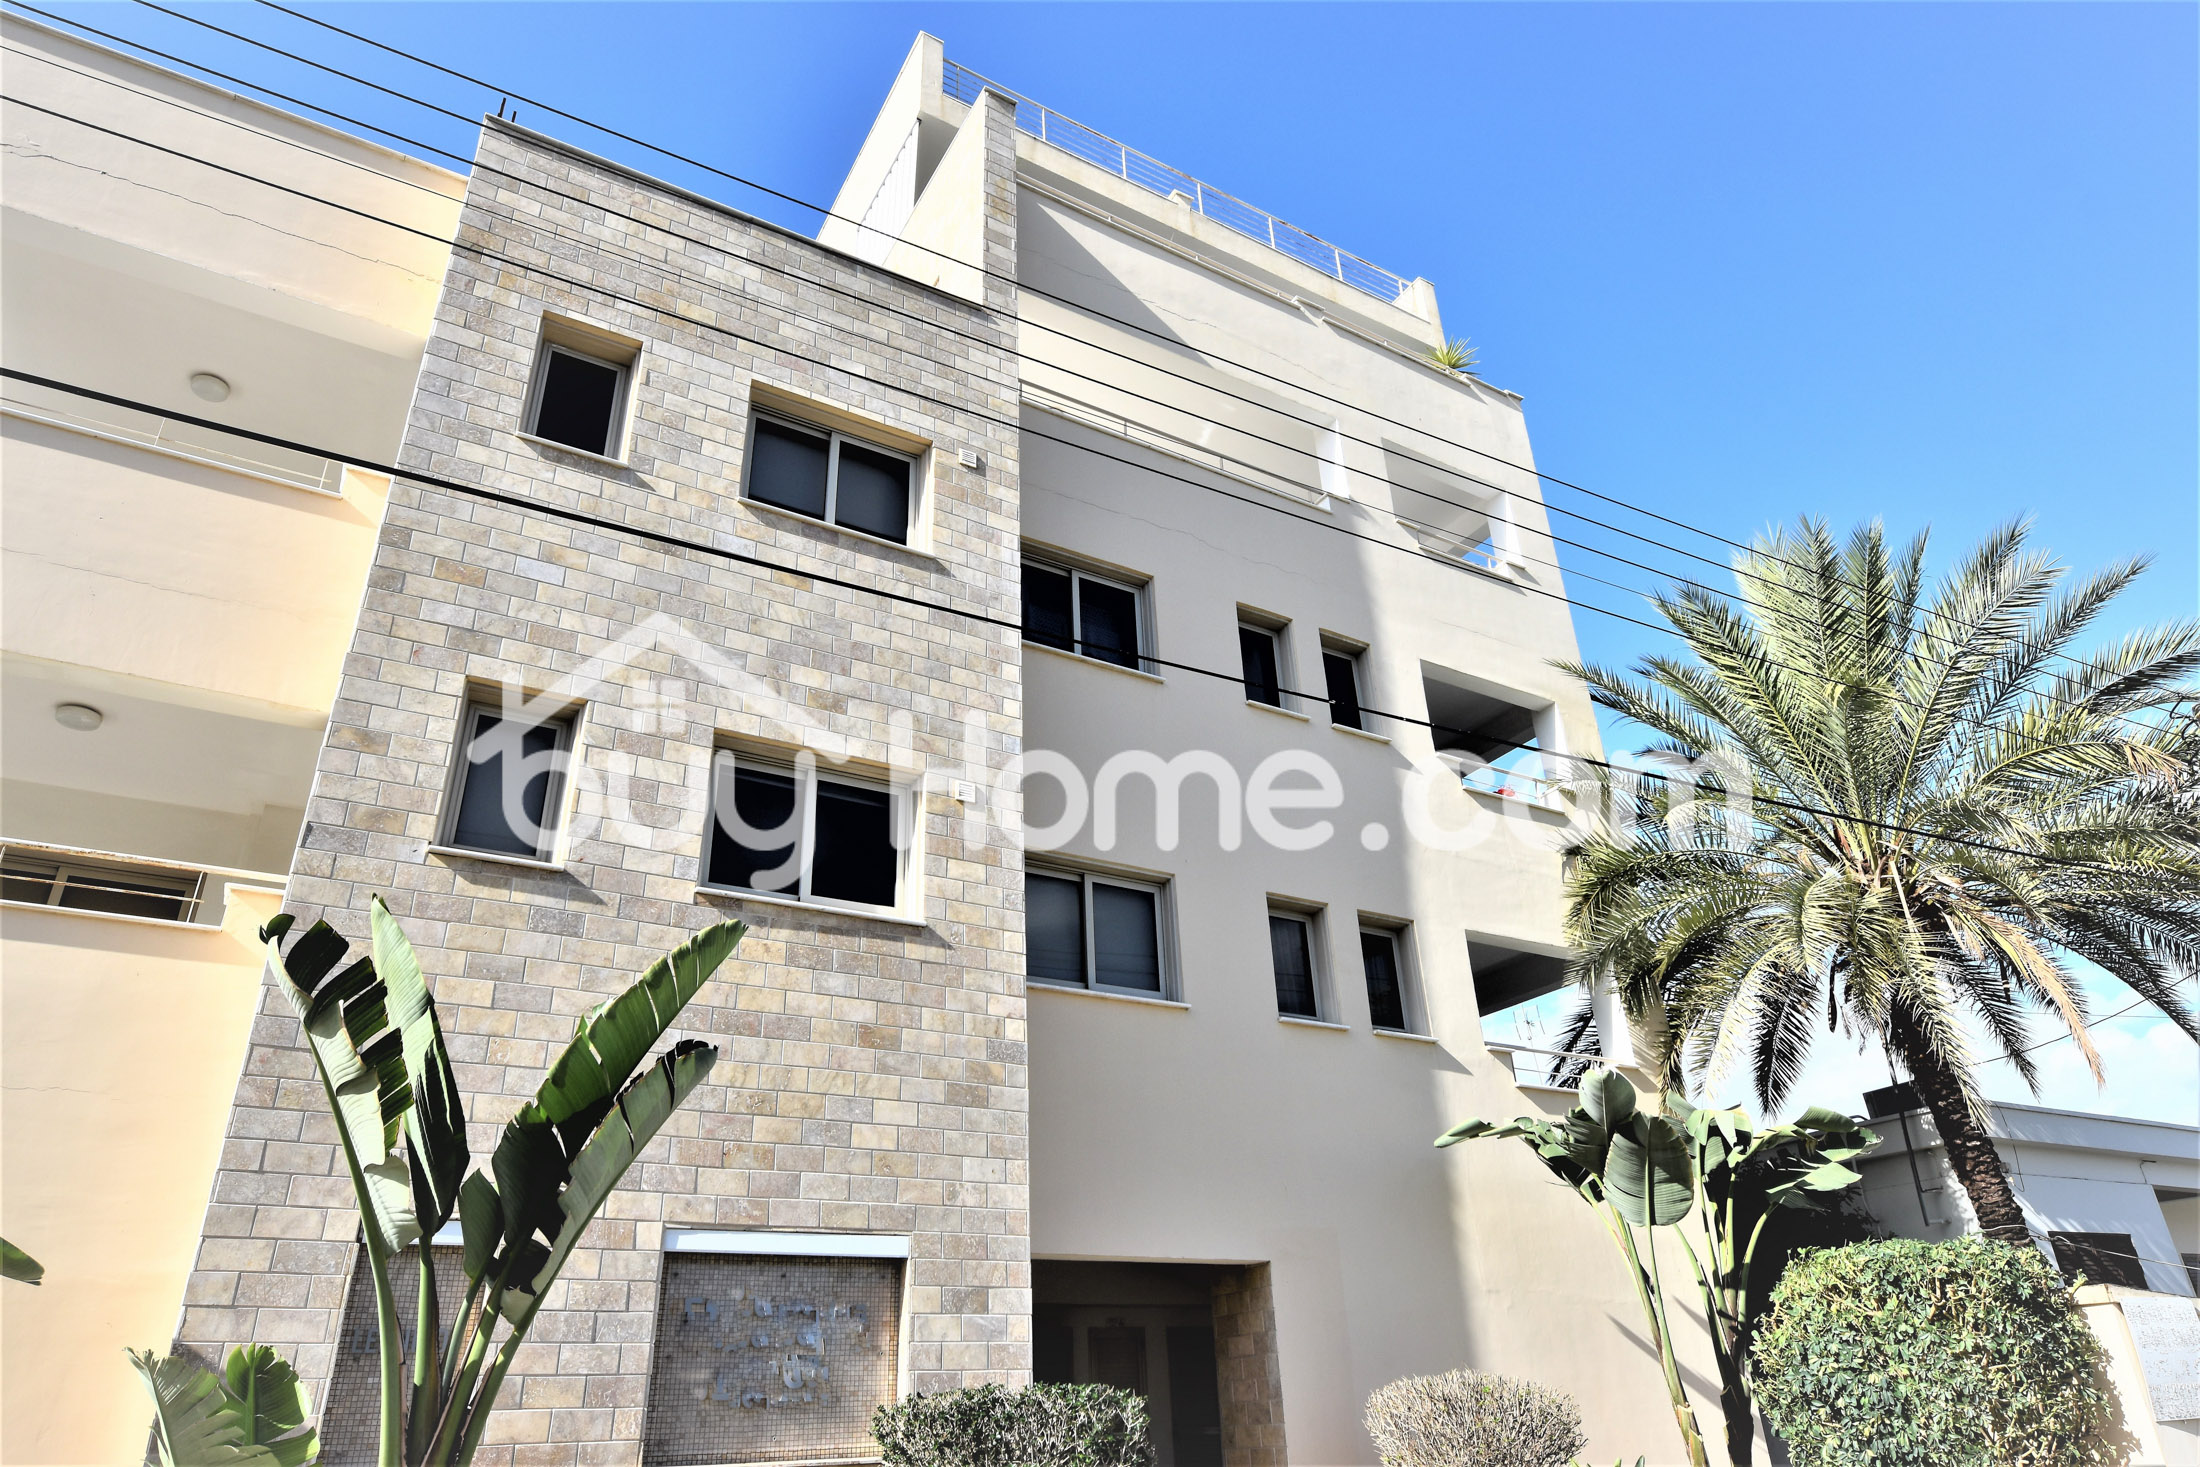 2 Bedroom Modern Apartment | BuyHome